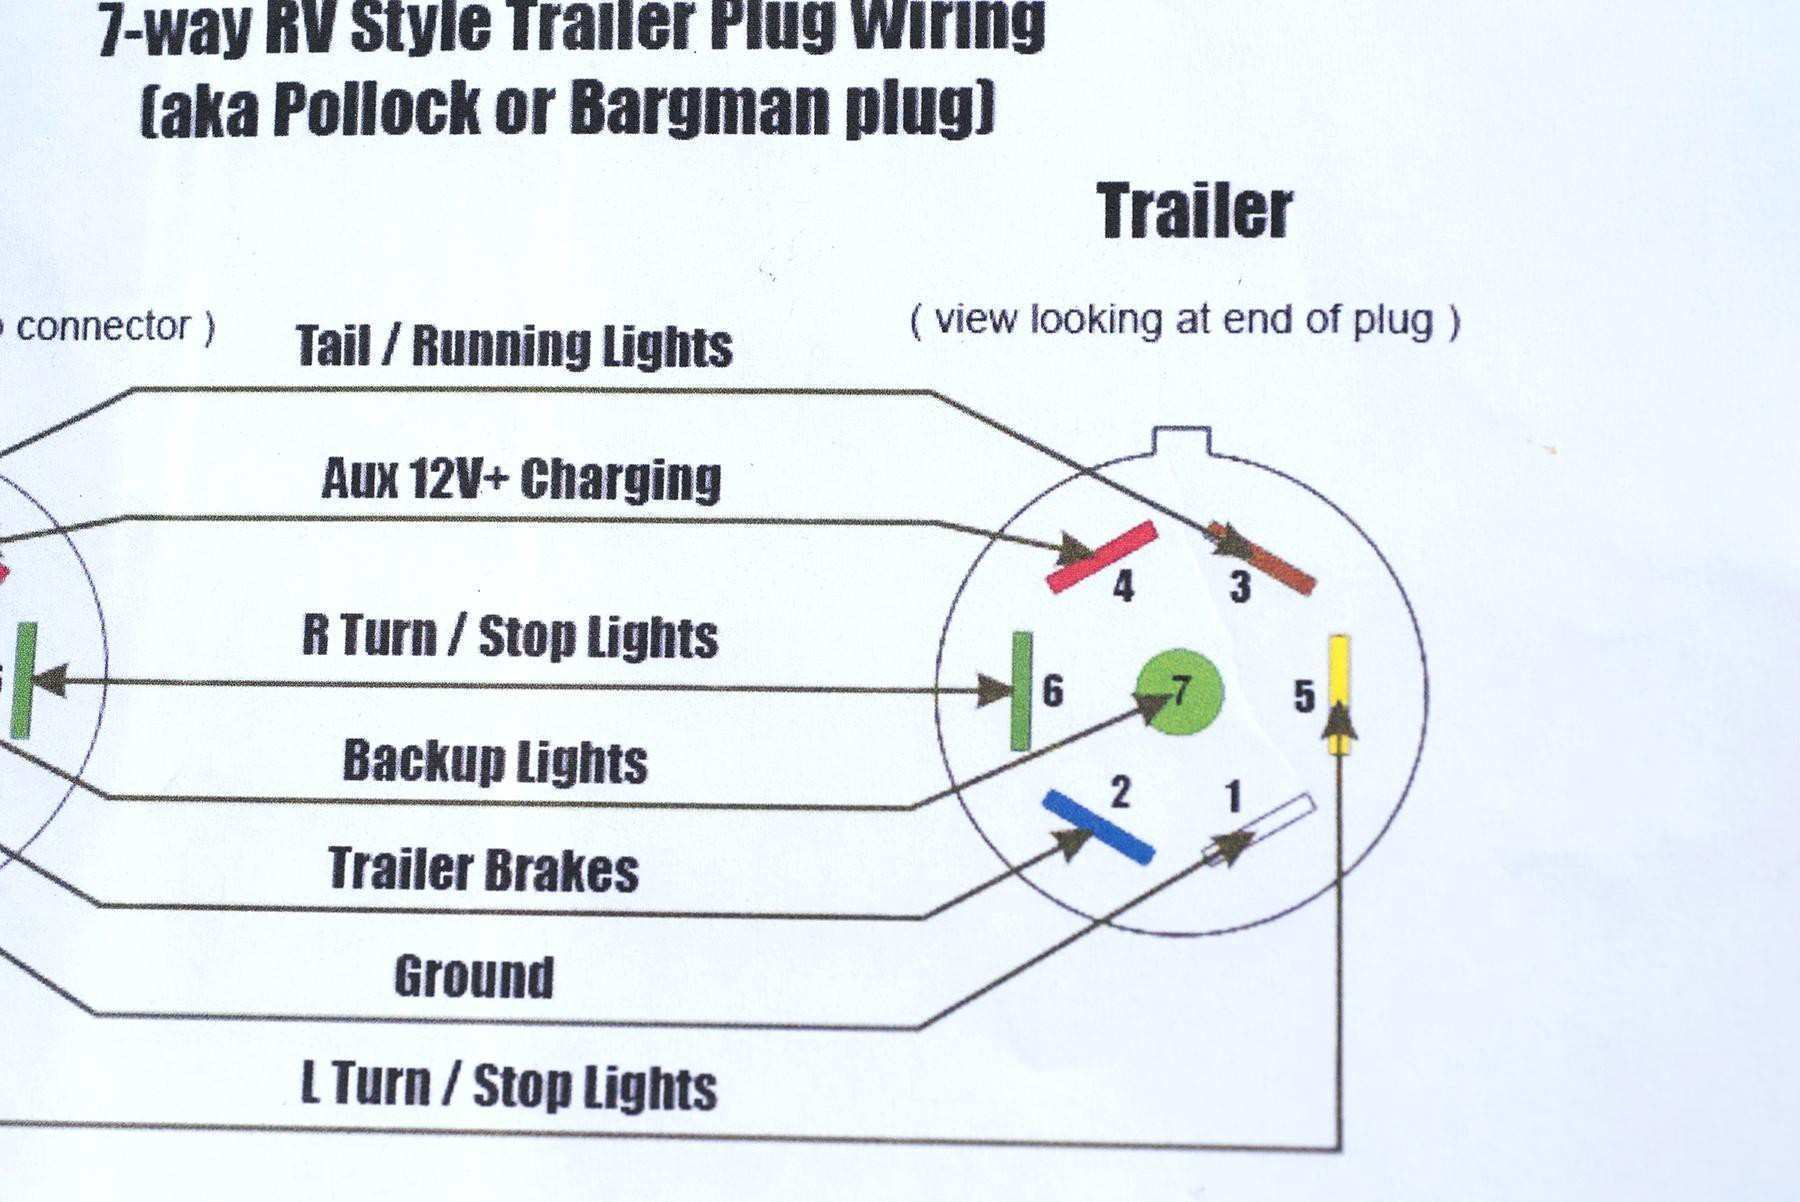 Trailer Wiring Diagram 7 Pin Flat - Great Installation Of Wiring - 7 Wire Trailer Diagram Ford